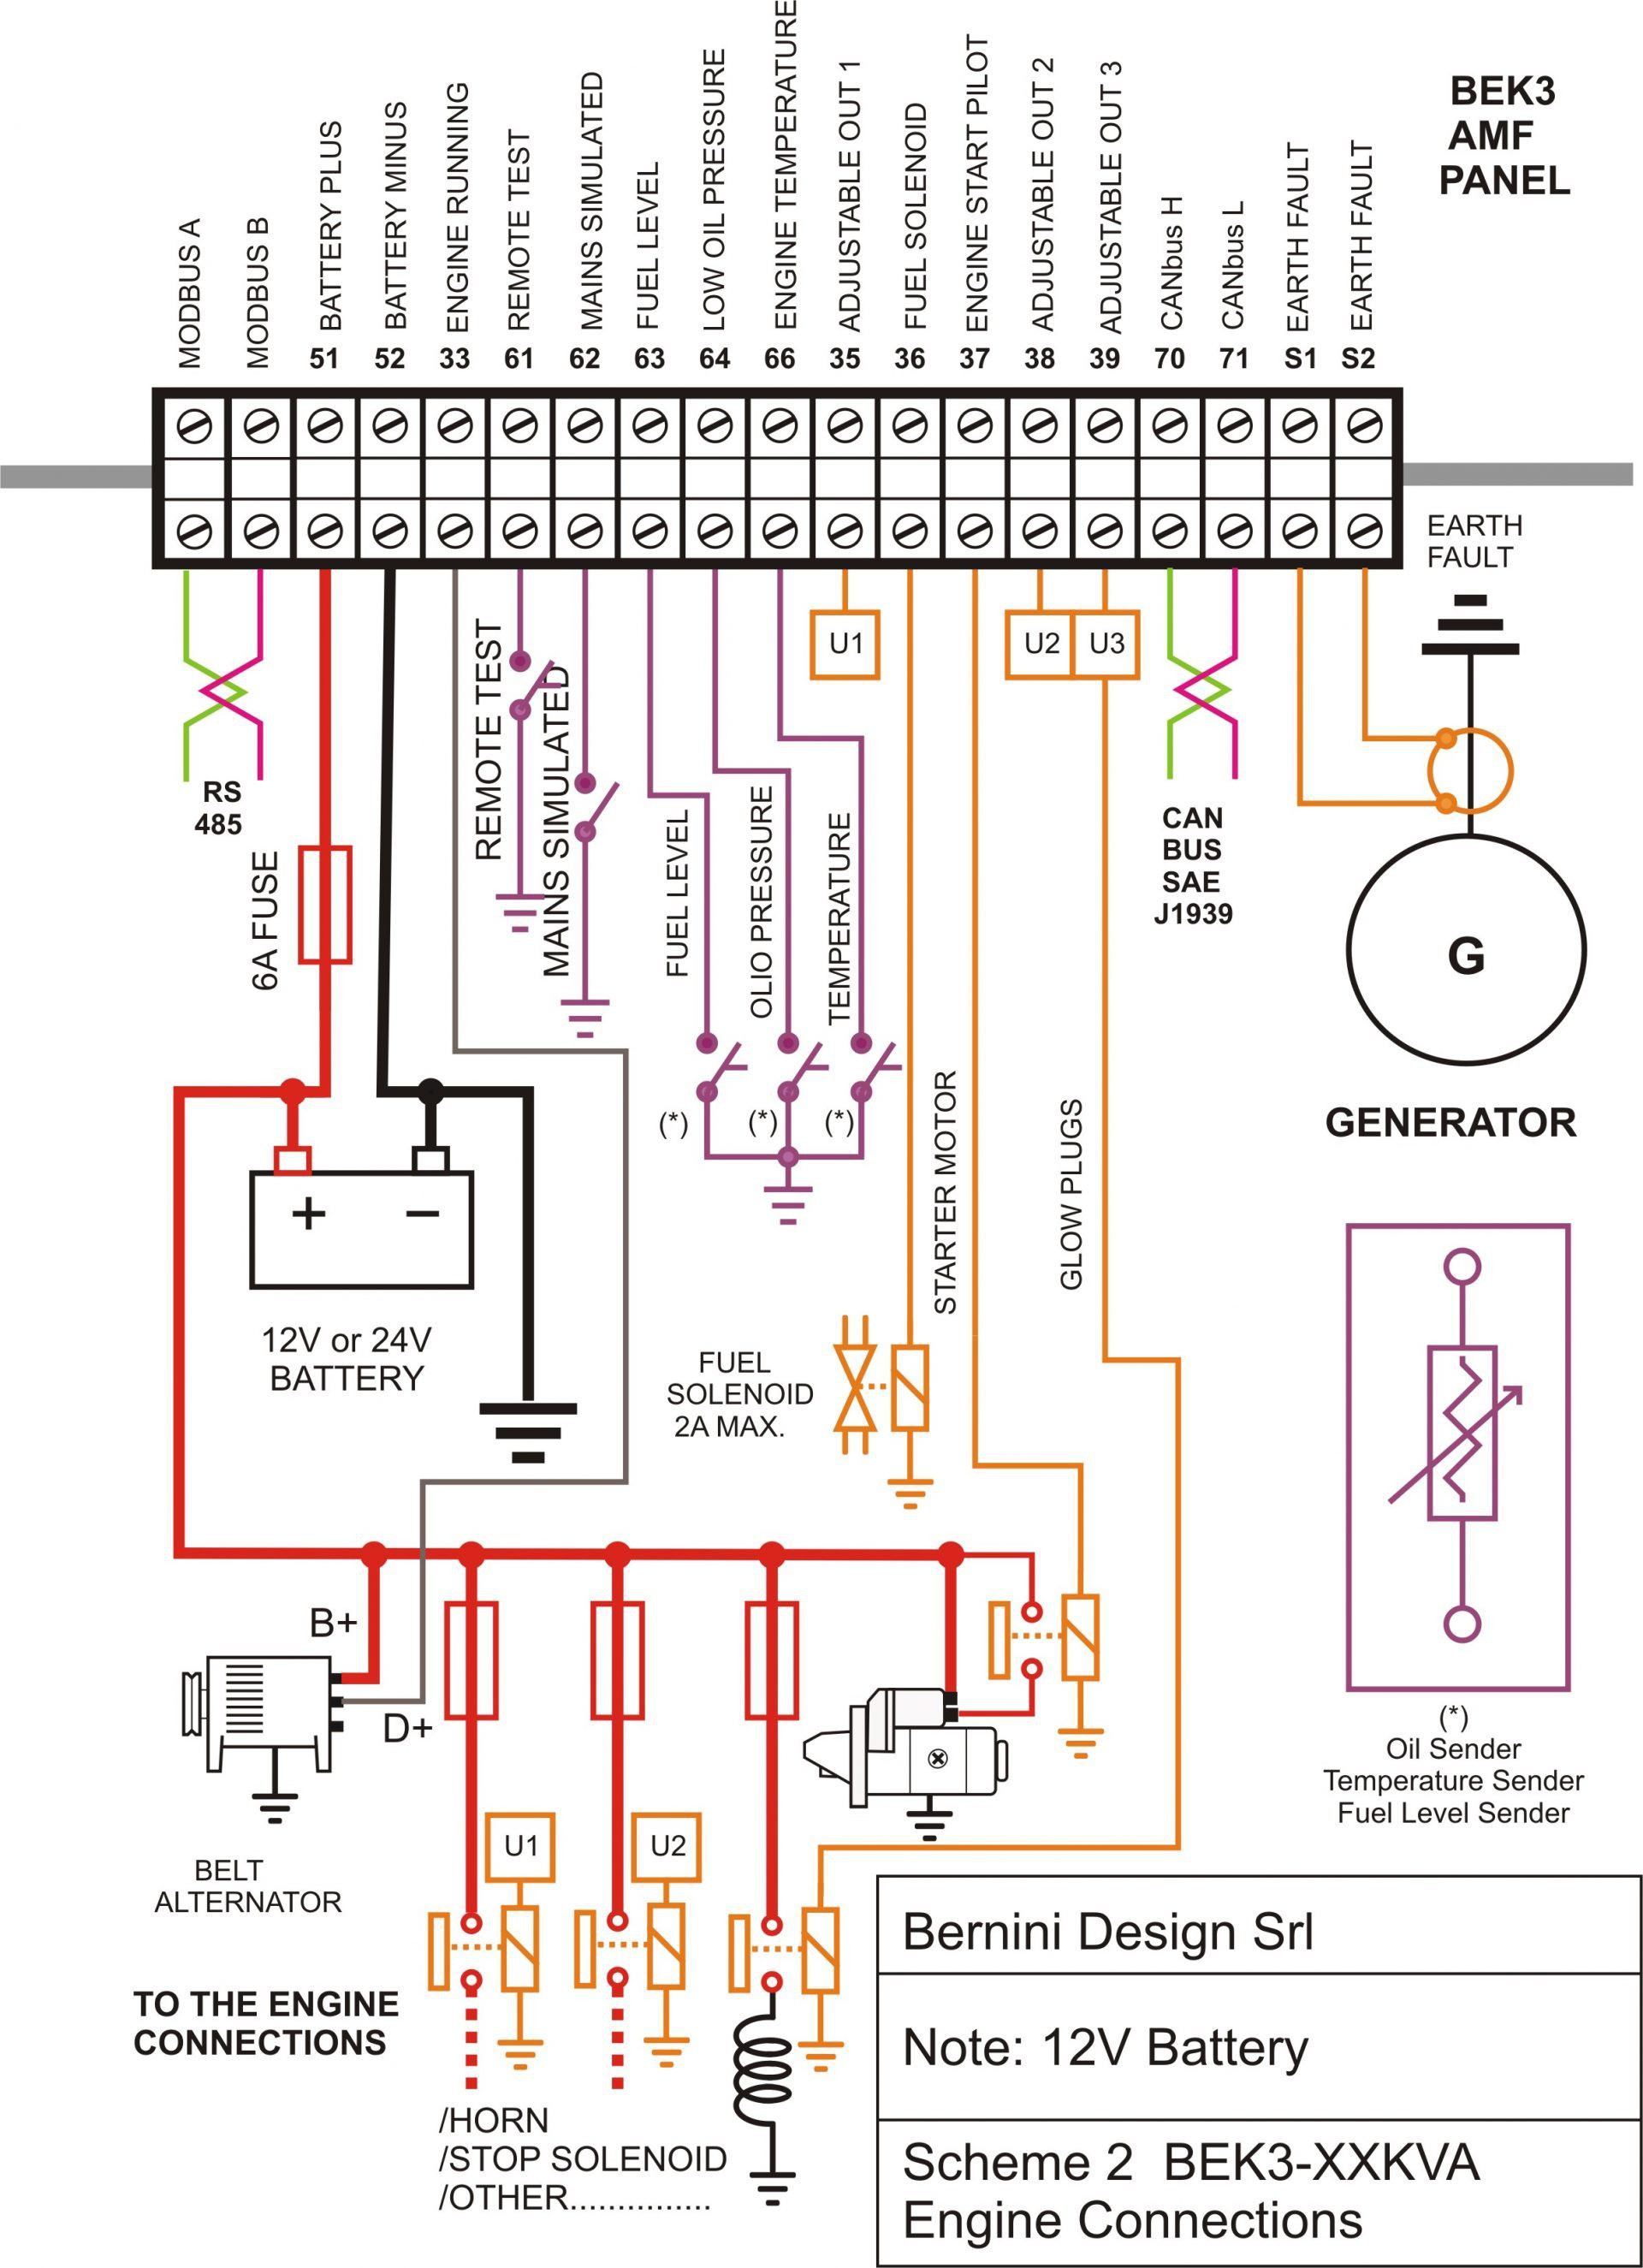 Cat C 12 Ecm Pin Wiring Diagram | Wiring Diagram - Cat 70 Pin Ecm Wiring Diagram